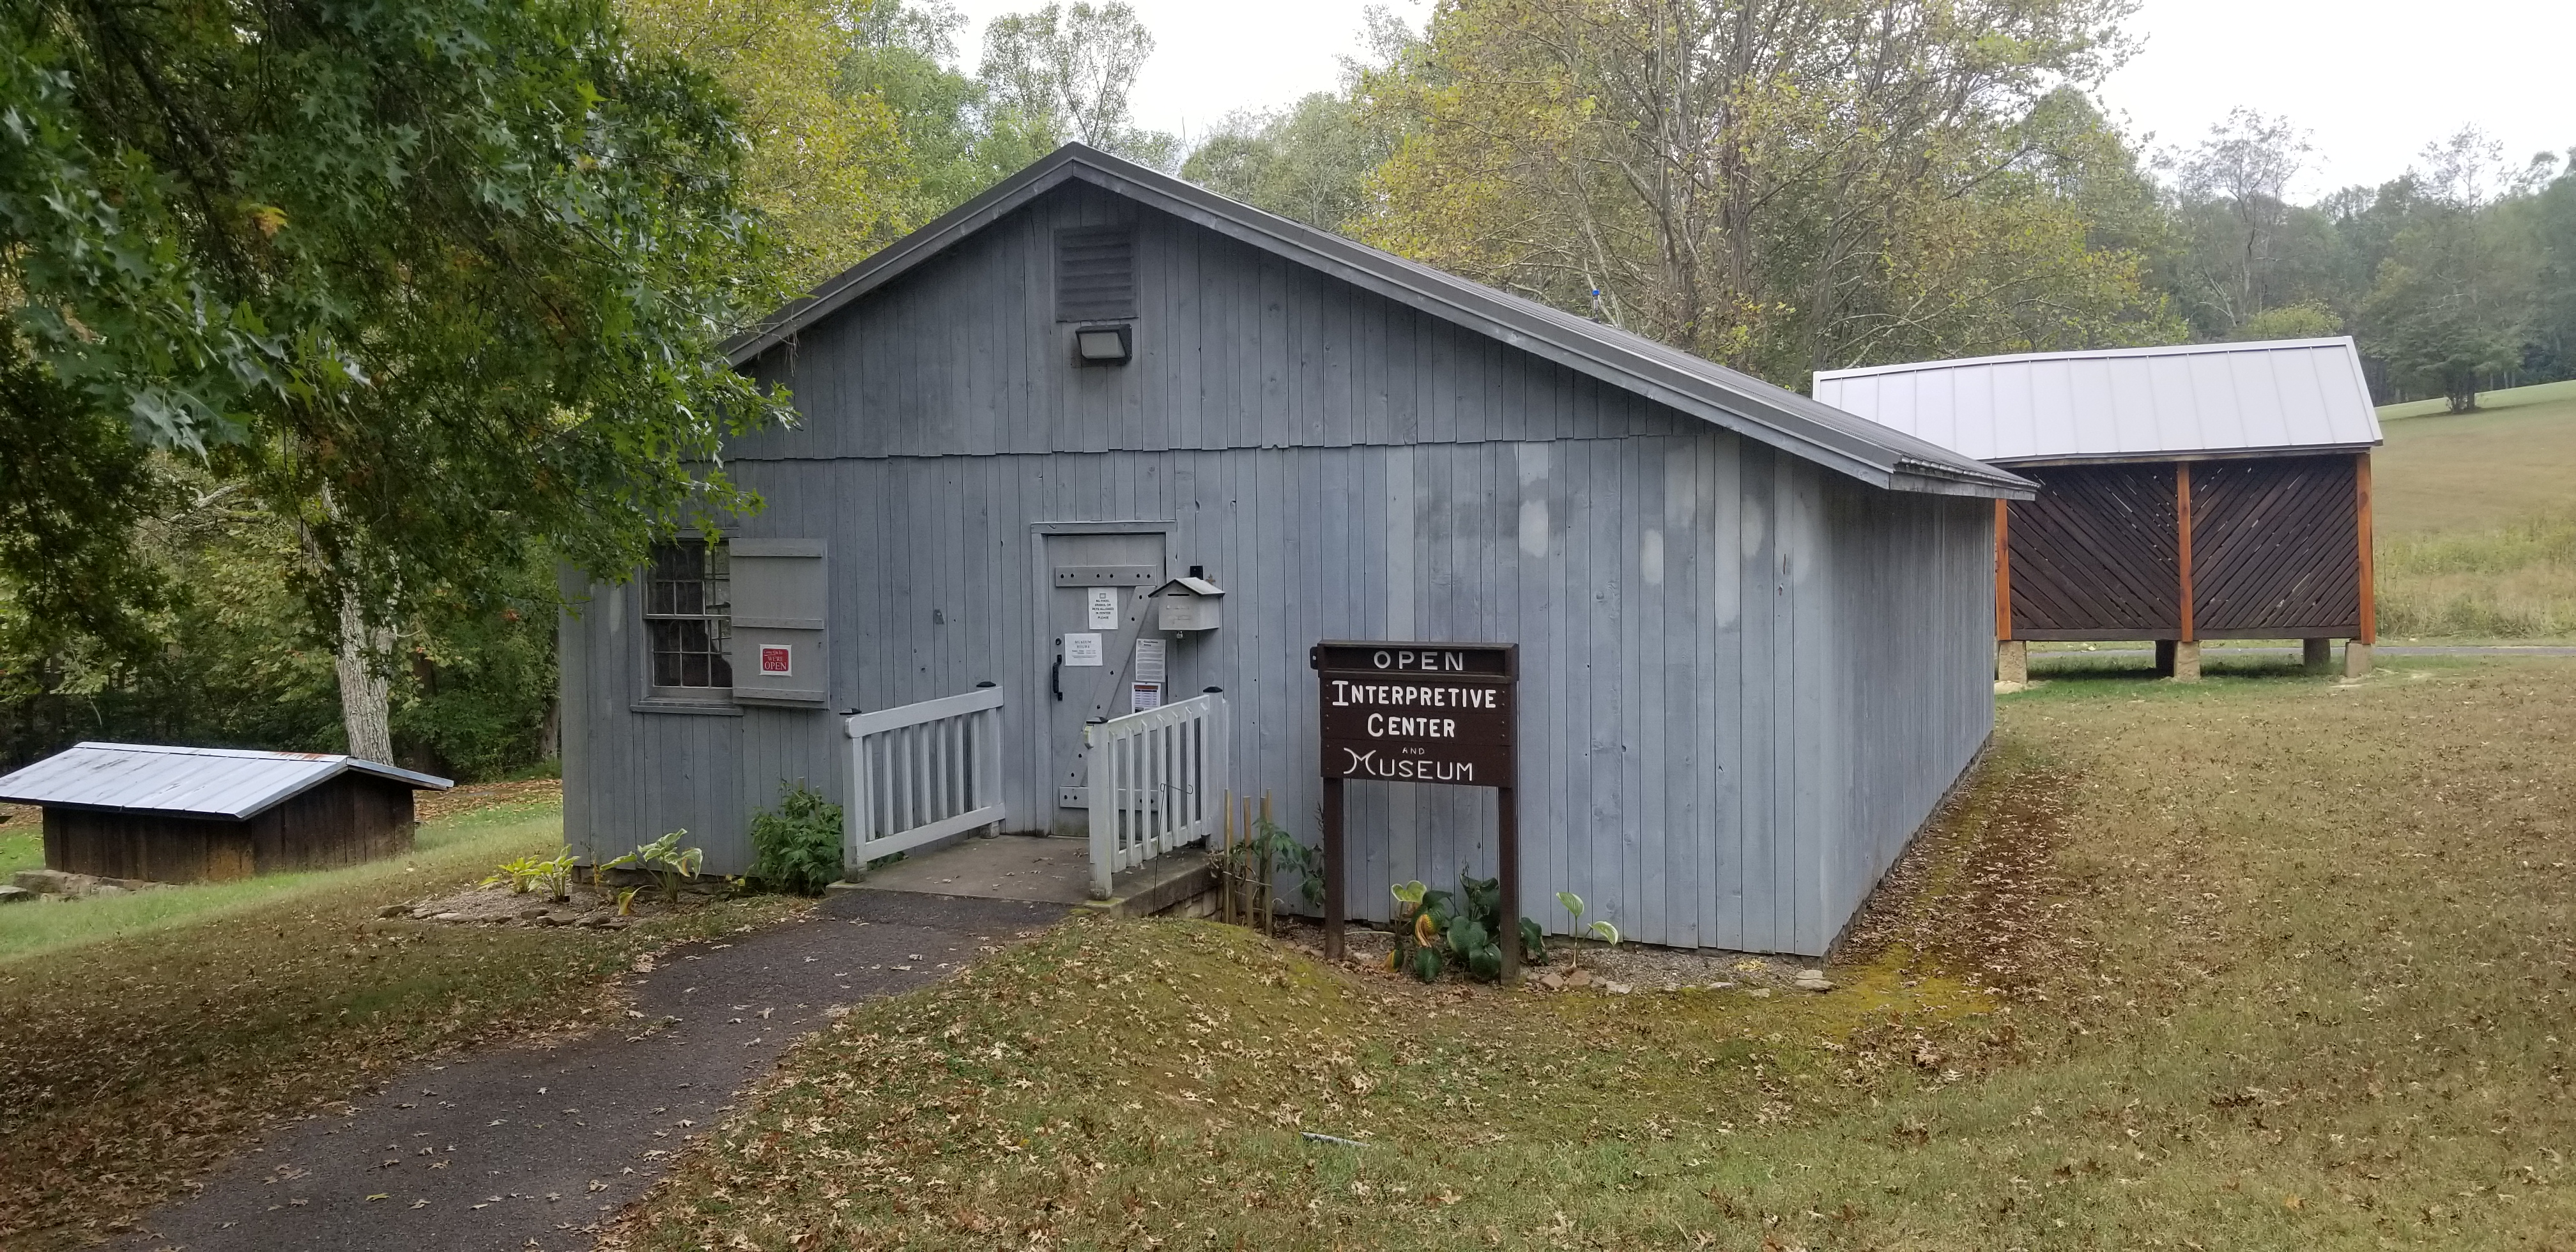 The Bulltown Interpretive Center and Museum Building